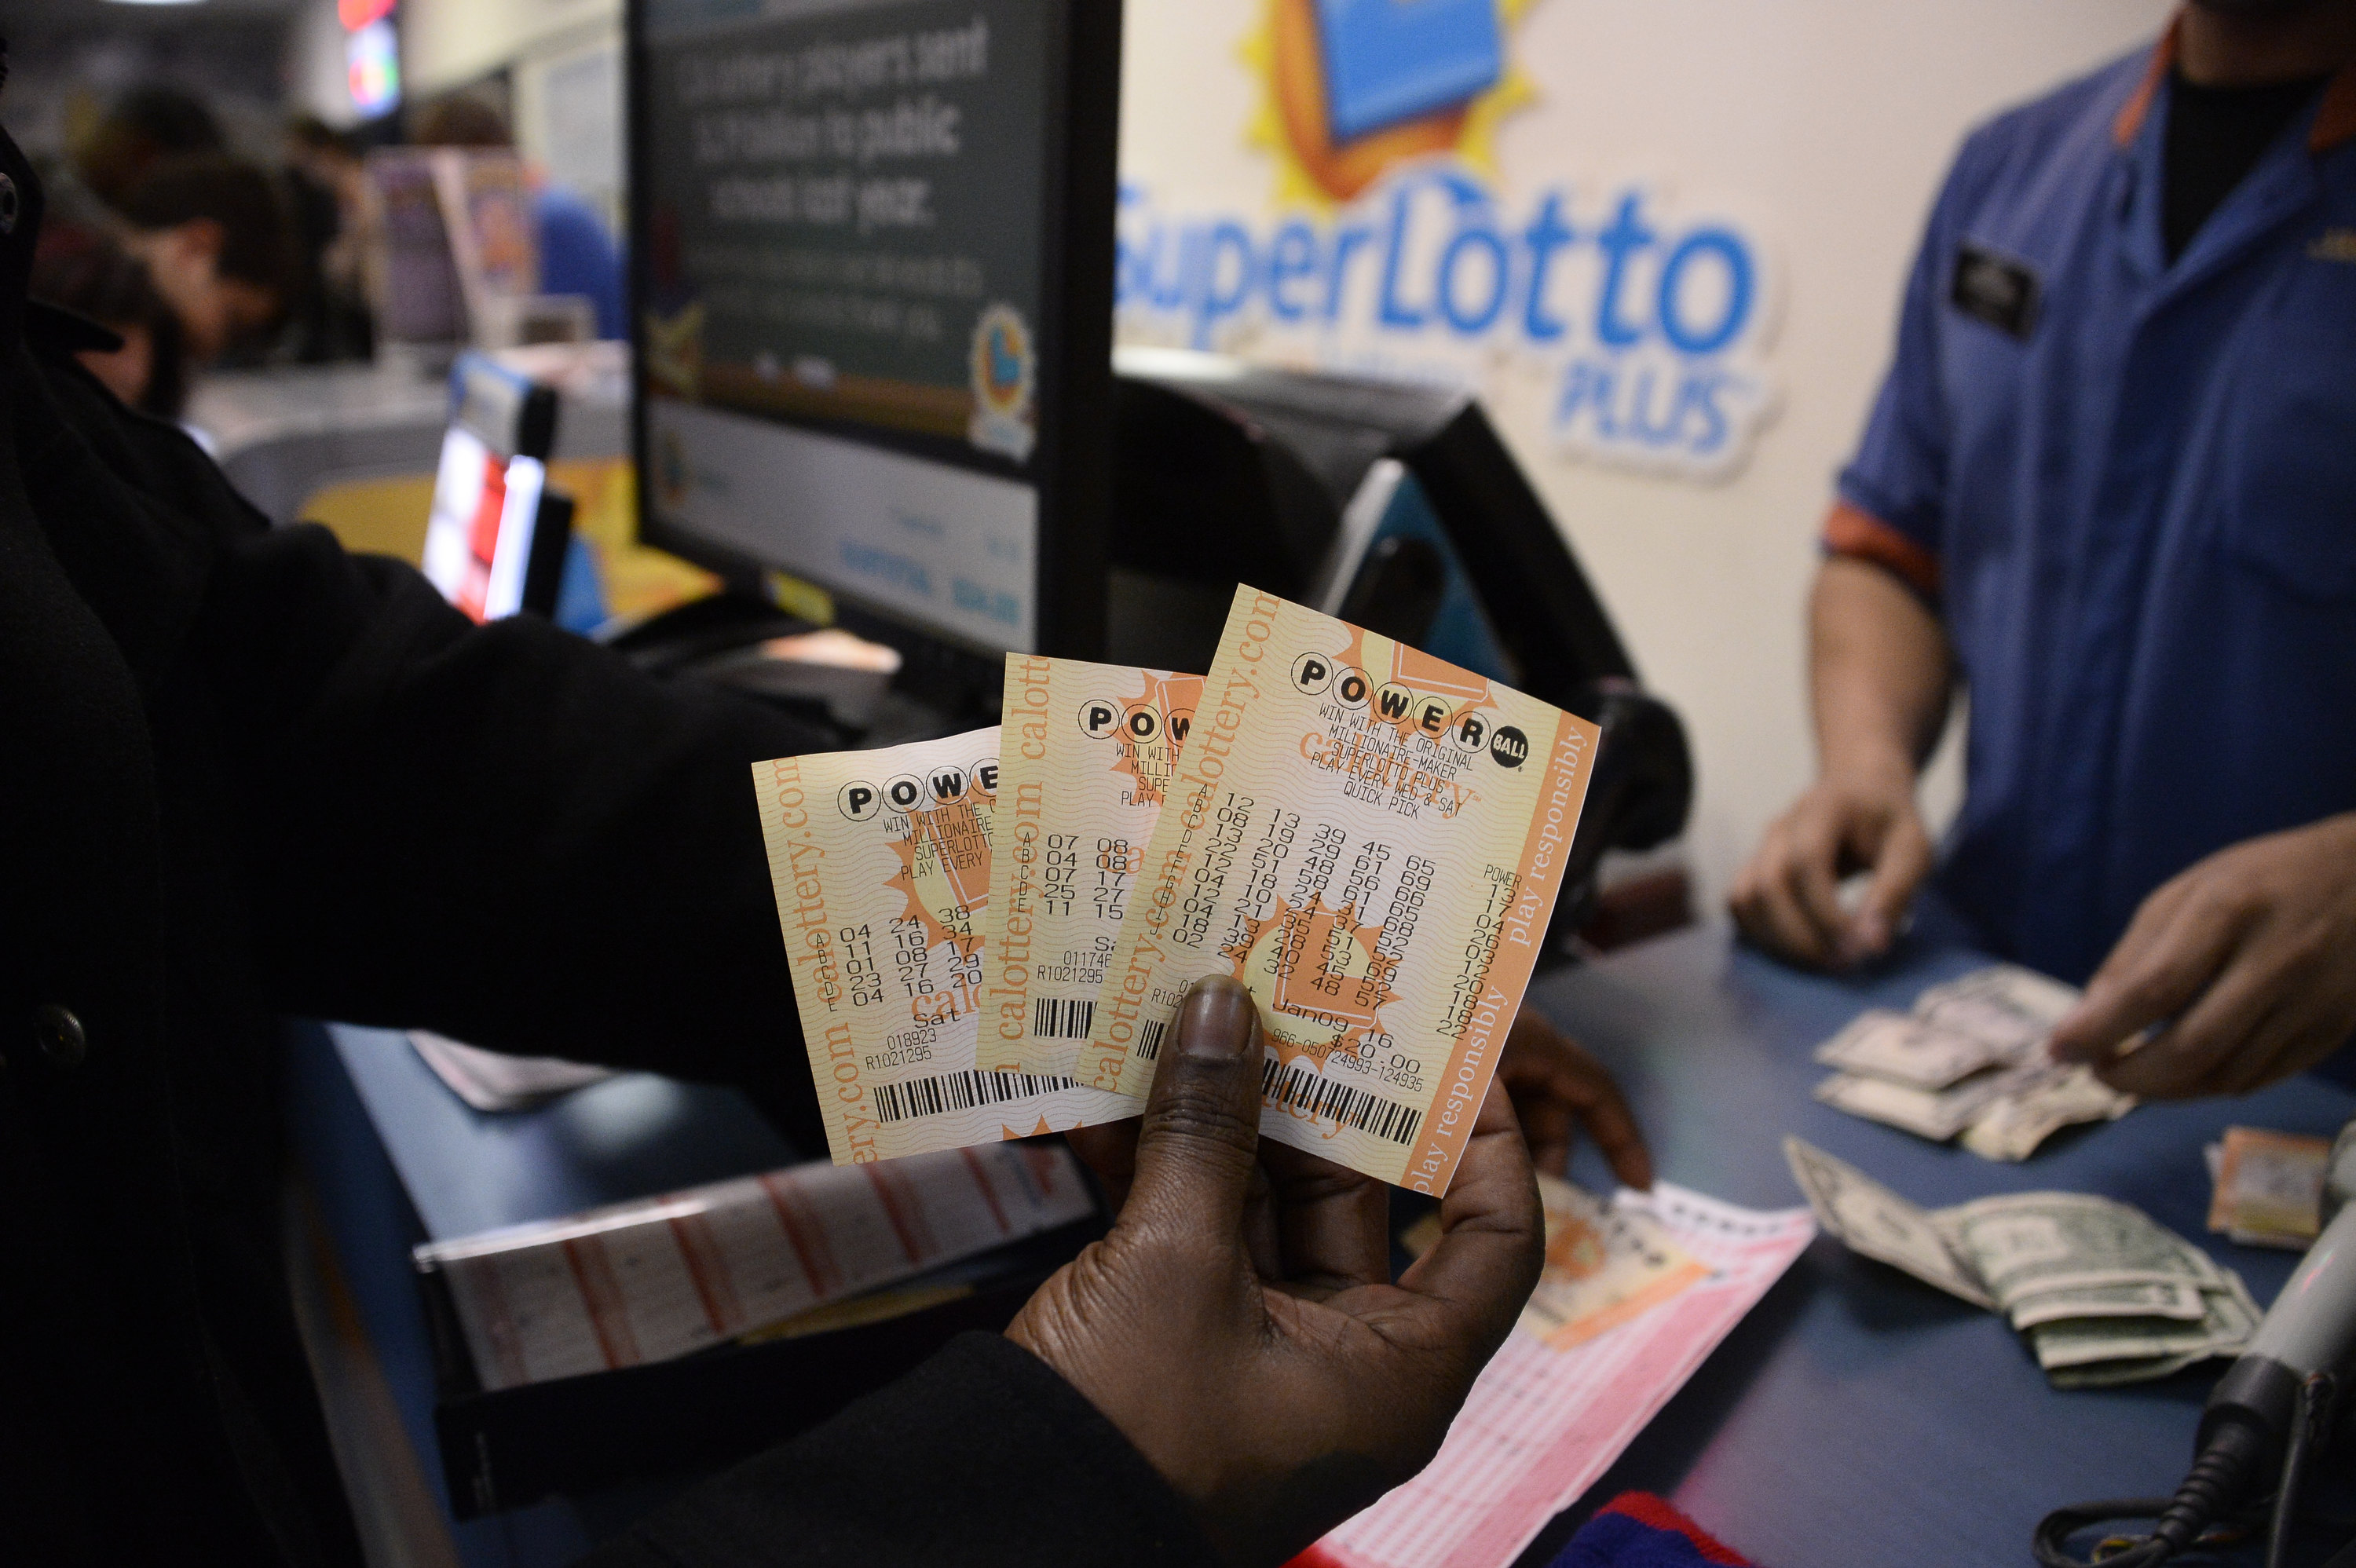 A customer shows their tickets for the Powerball lottery at the CA lotto store in San Bernardino County, California